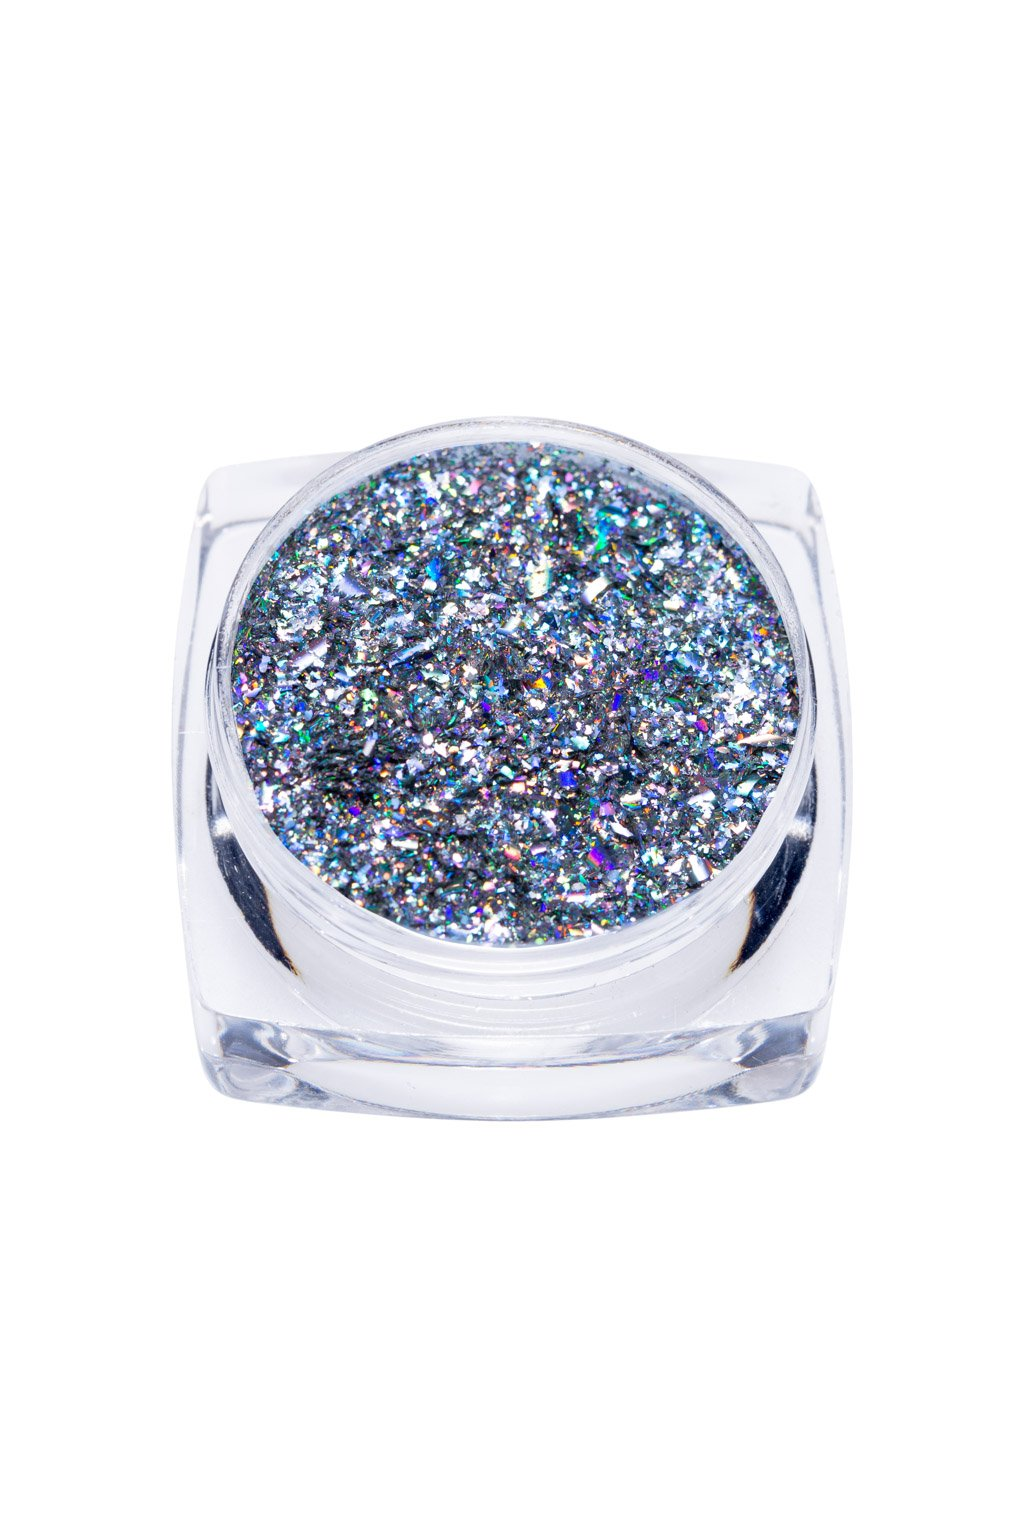 23903 magic holo flakes